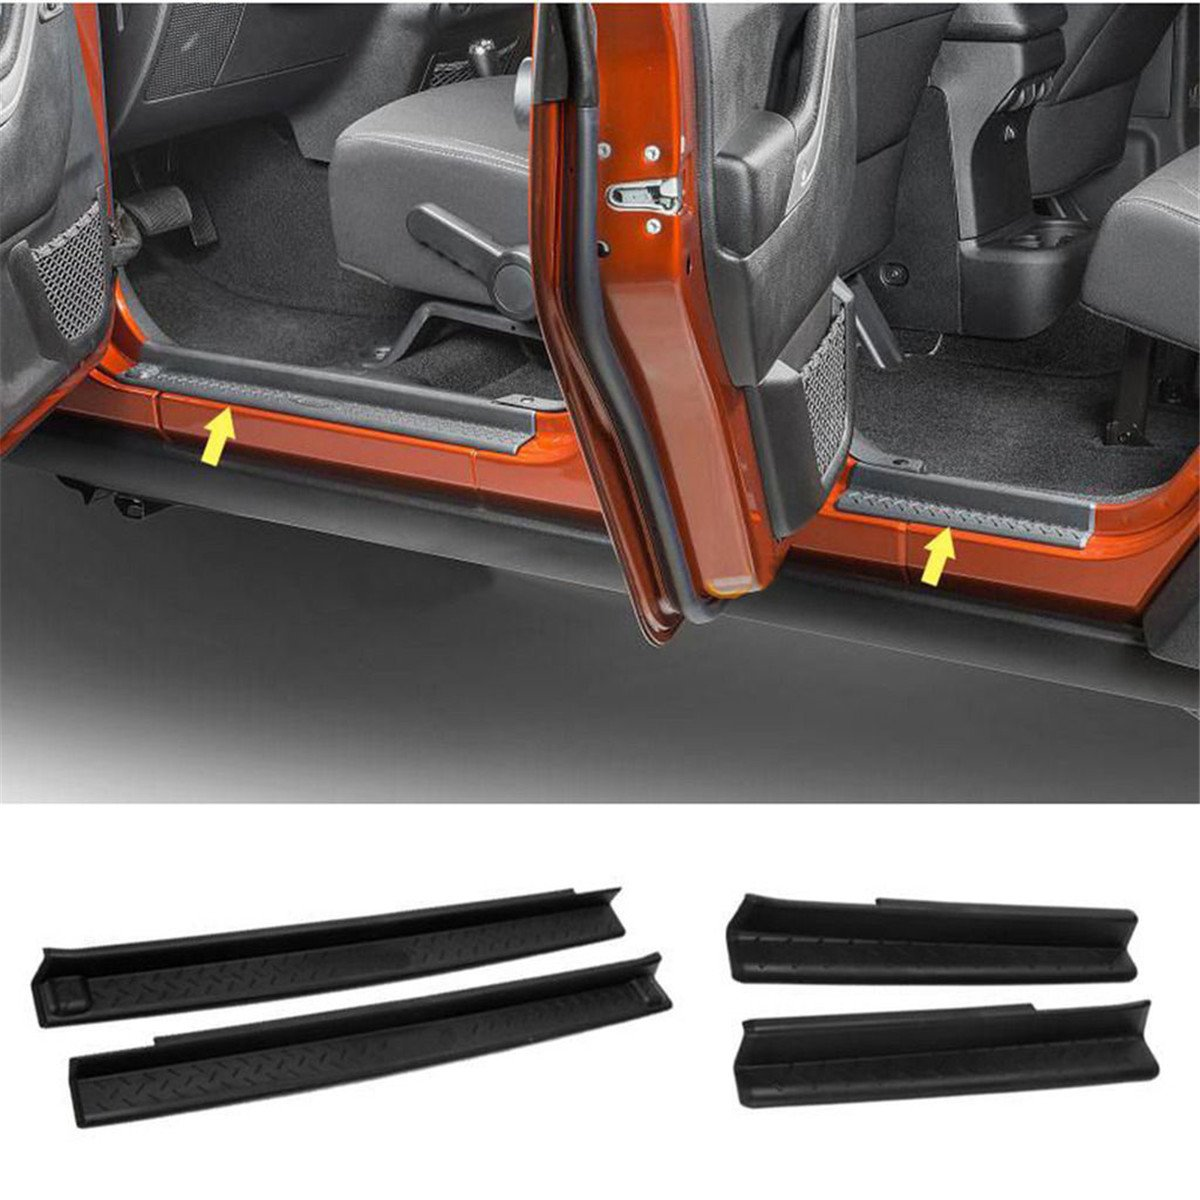 FMtoppeak One Set of 4 Pcs Front & Rear Door Sill Protector Cover Scuff Plate Entry Guards for 2007-2017 Jeep Wrangler JK 4 Door (Black)